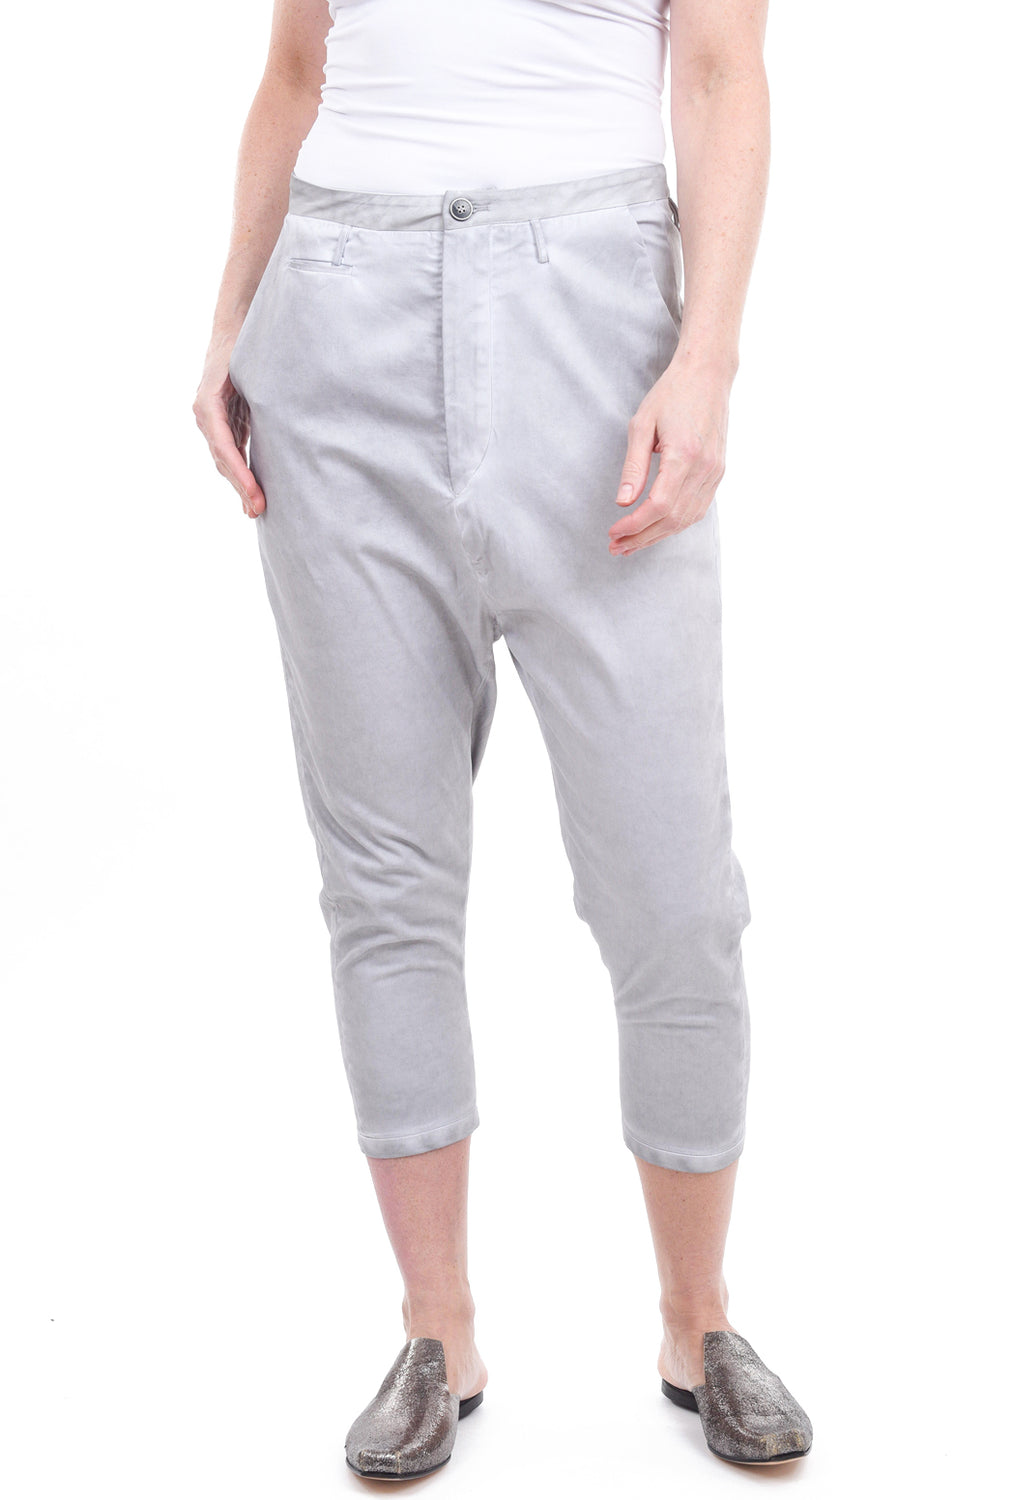 Umit Unal Extended Rise Chinos, Cement Gray